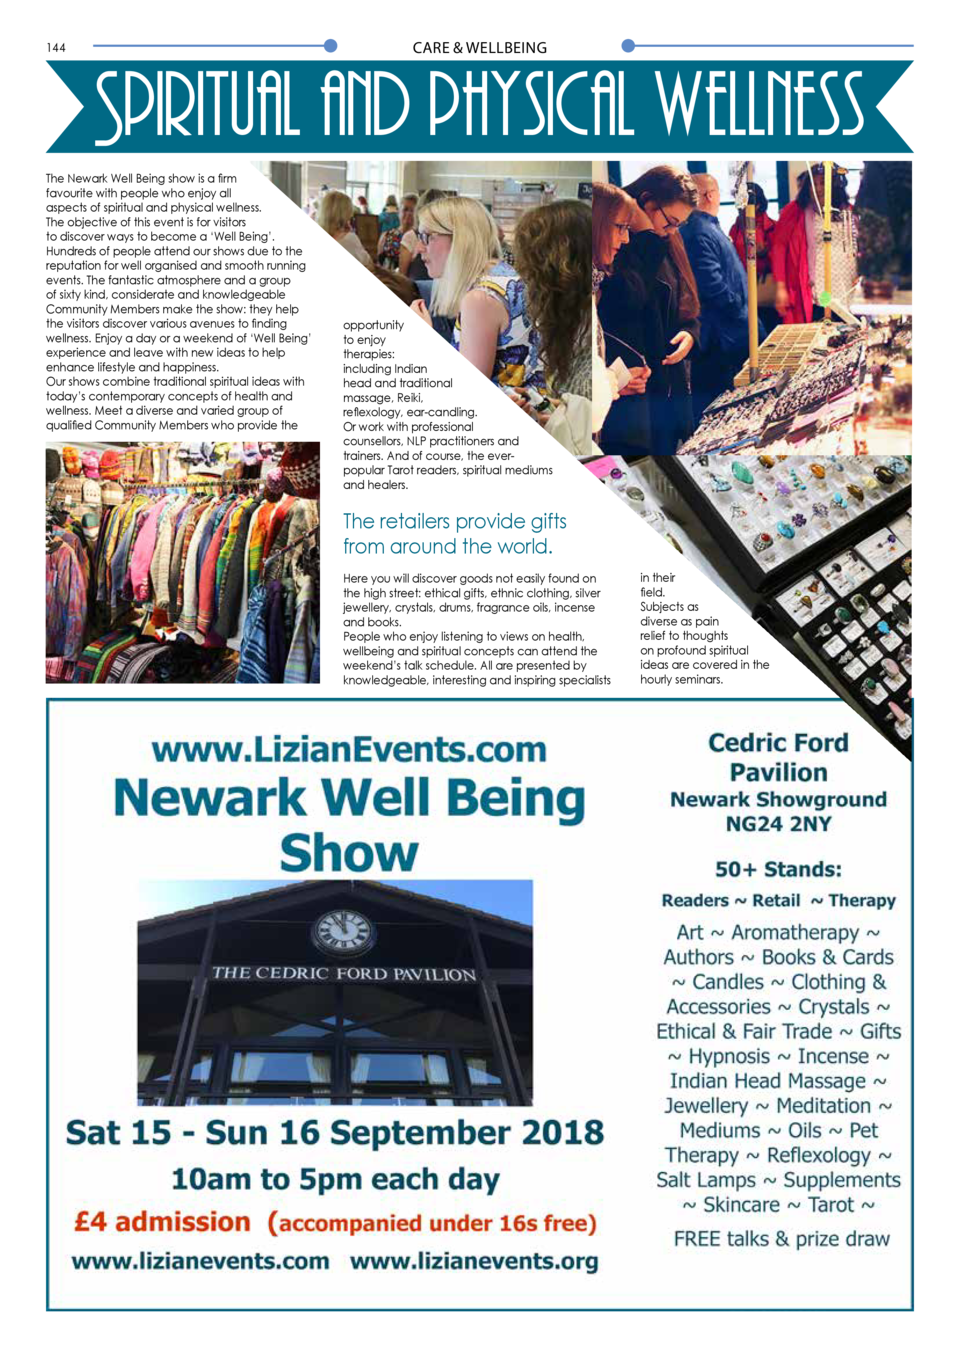 CARE   WELLBEING  144  145  Spiritual and physical wellness The Newark Well Being show is a firm favourite with people who...